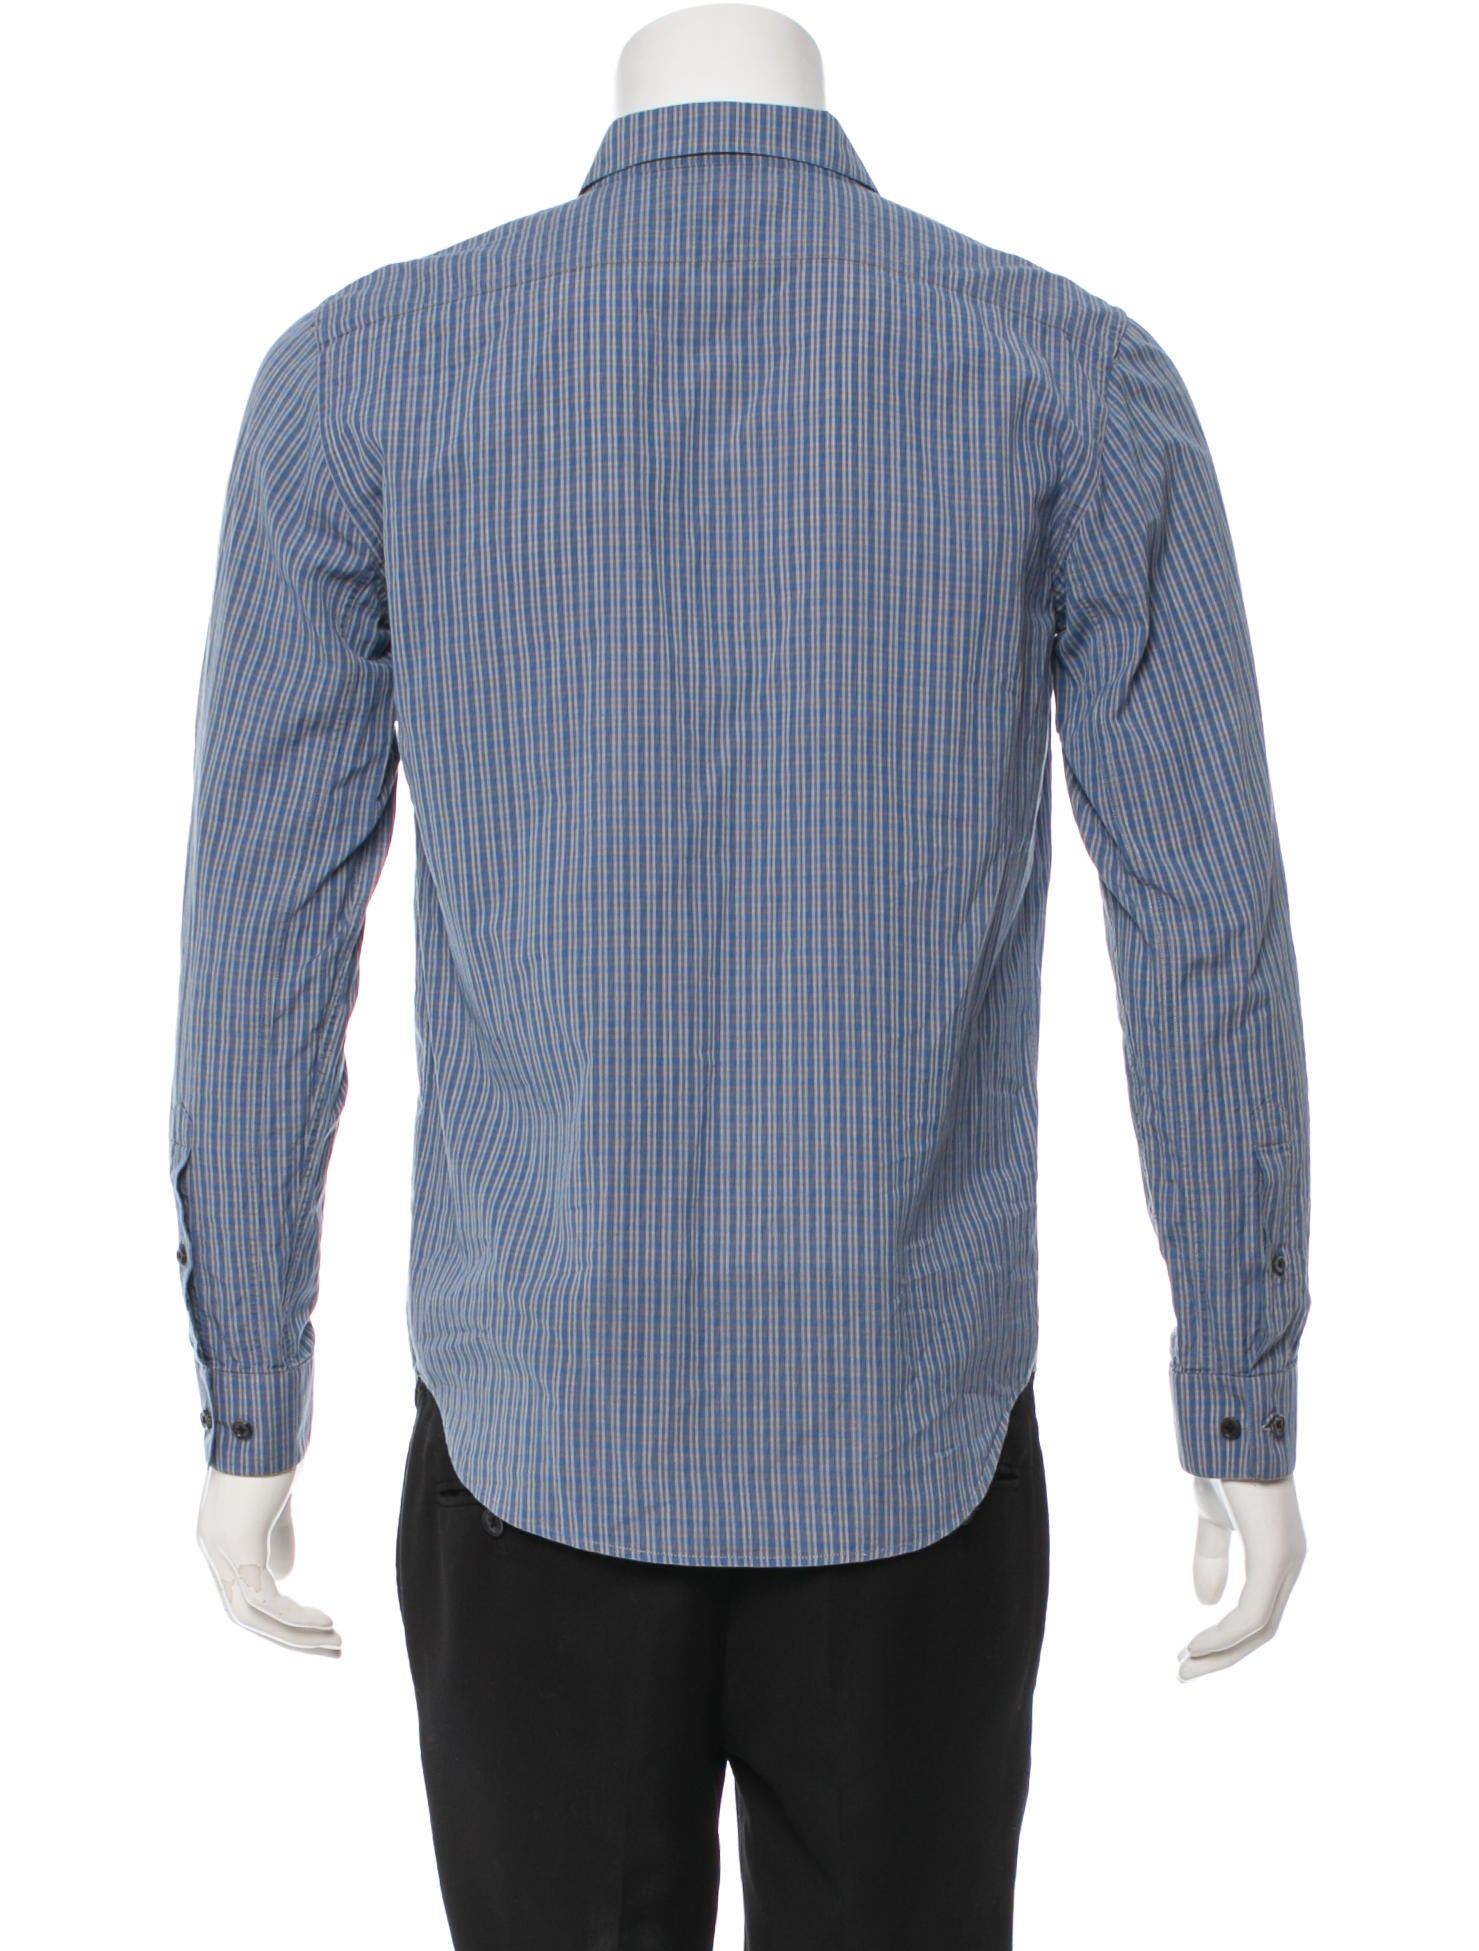 Marc Jacobs Long Sleeve Button Up Shirt Clothing